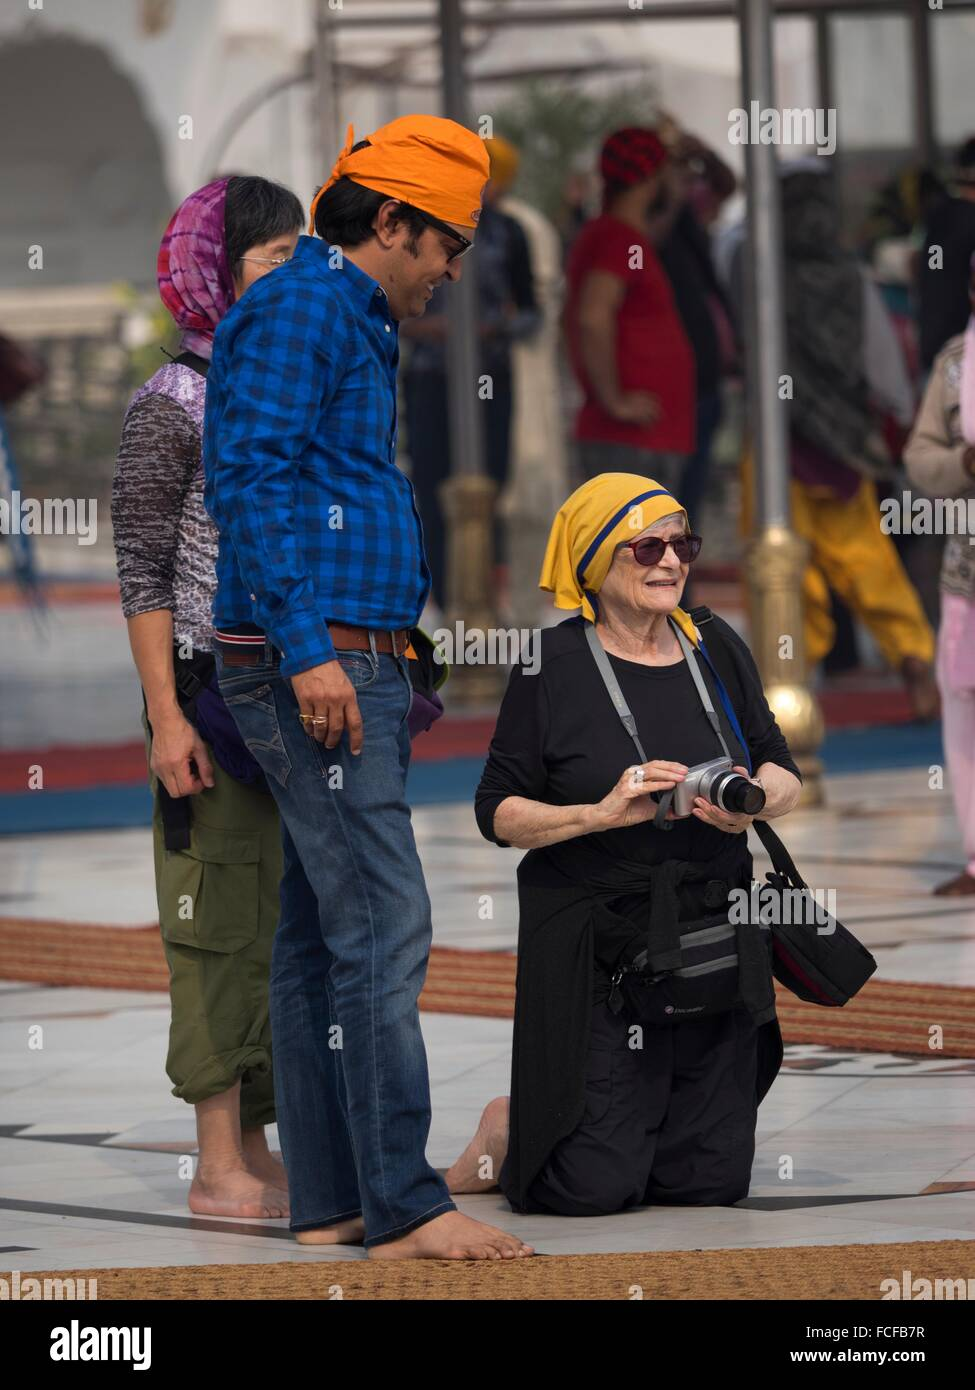 Western visitors interact with Indians in New Delhi, India - Stock Image